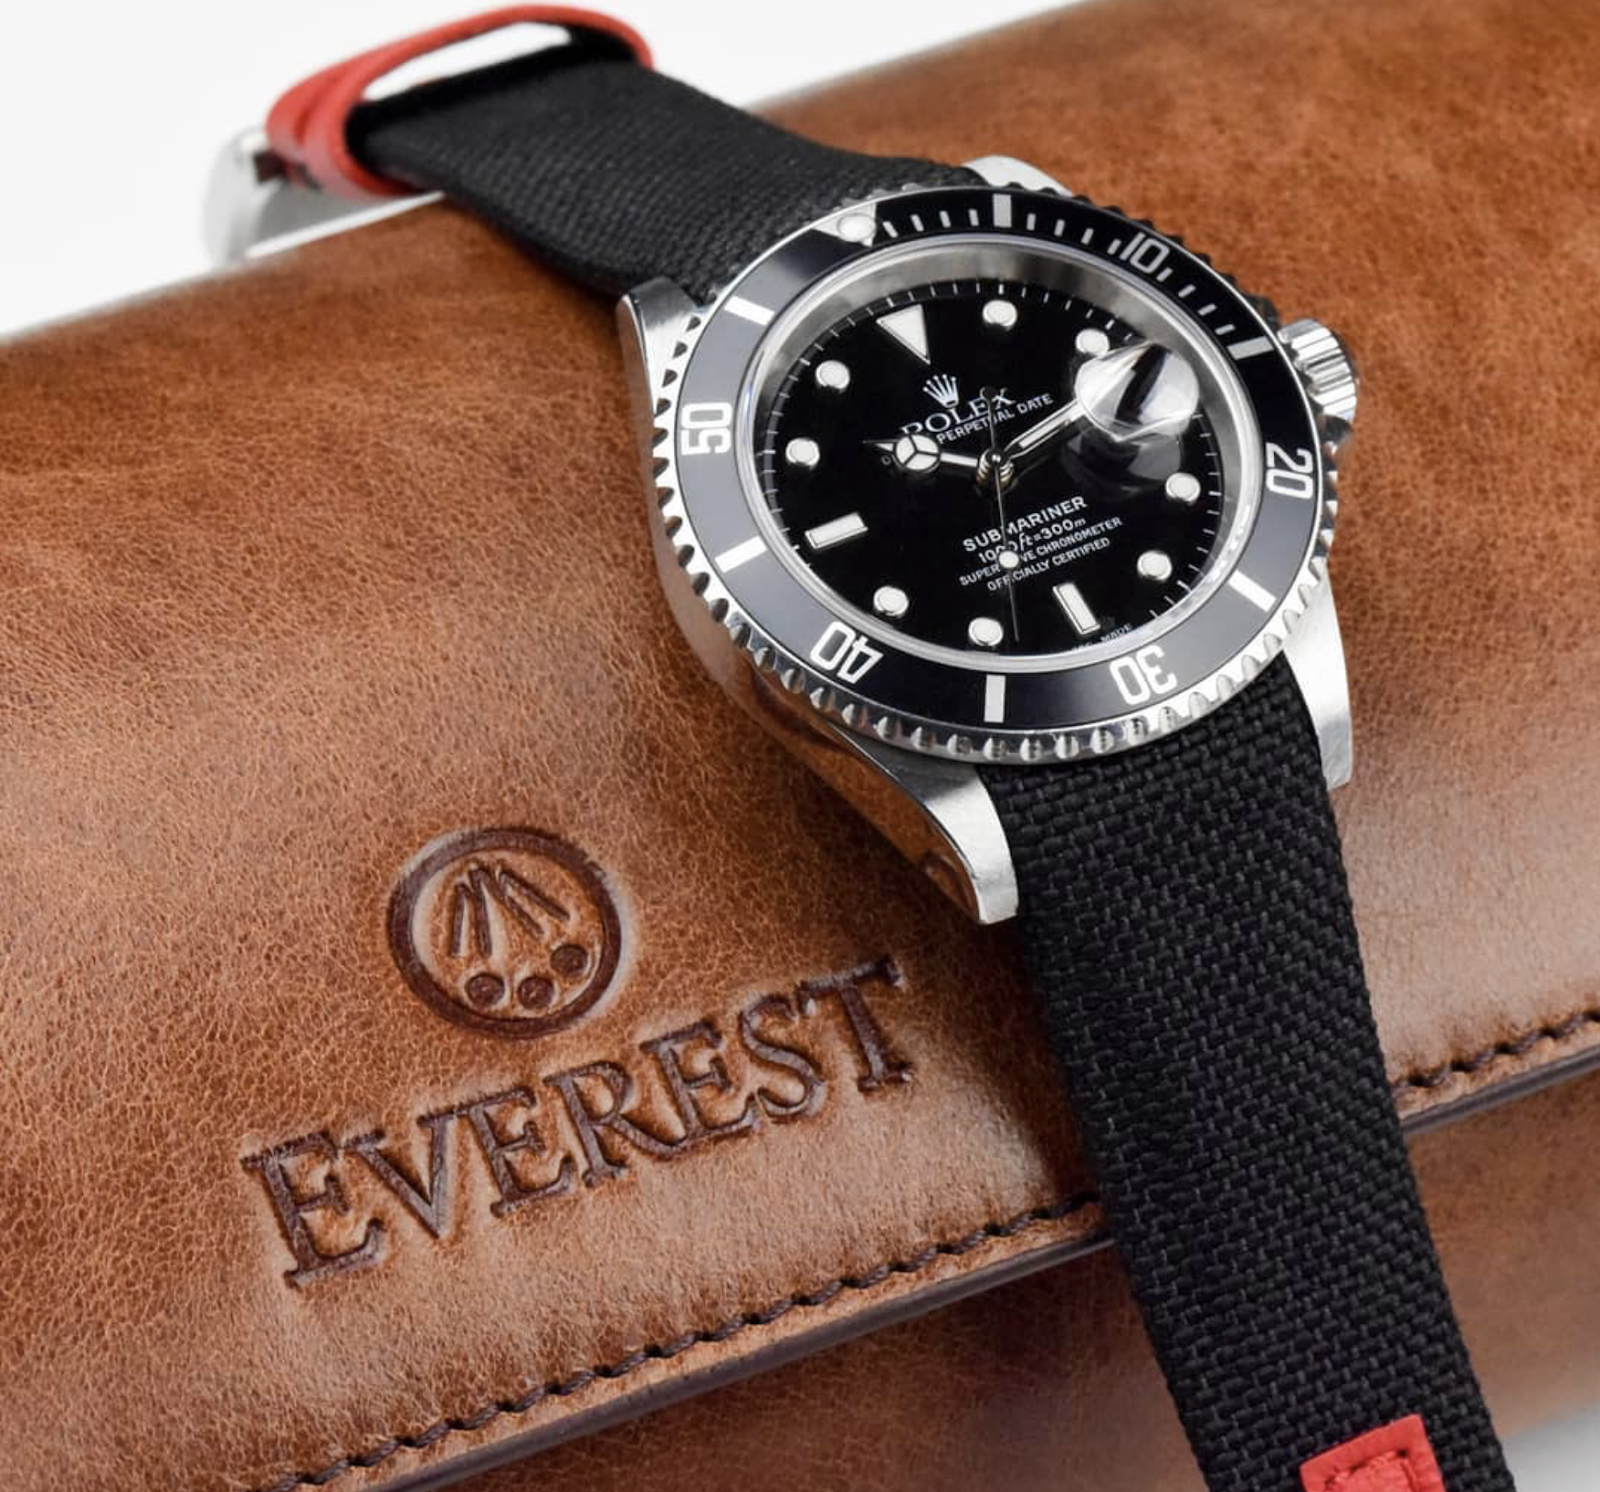 curved end nylon strap on rolex submariner next to a leather watch roll